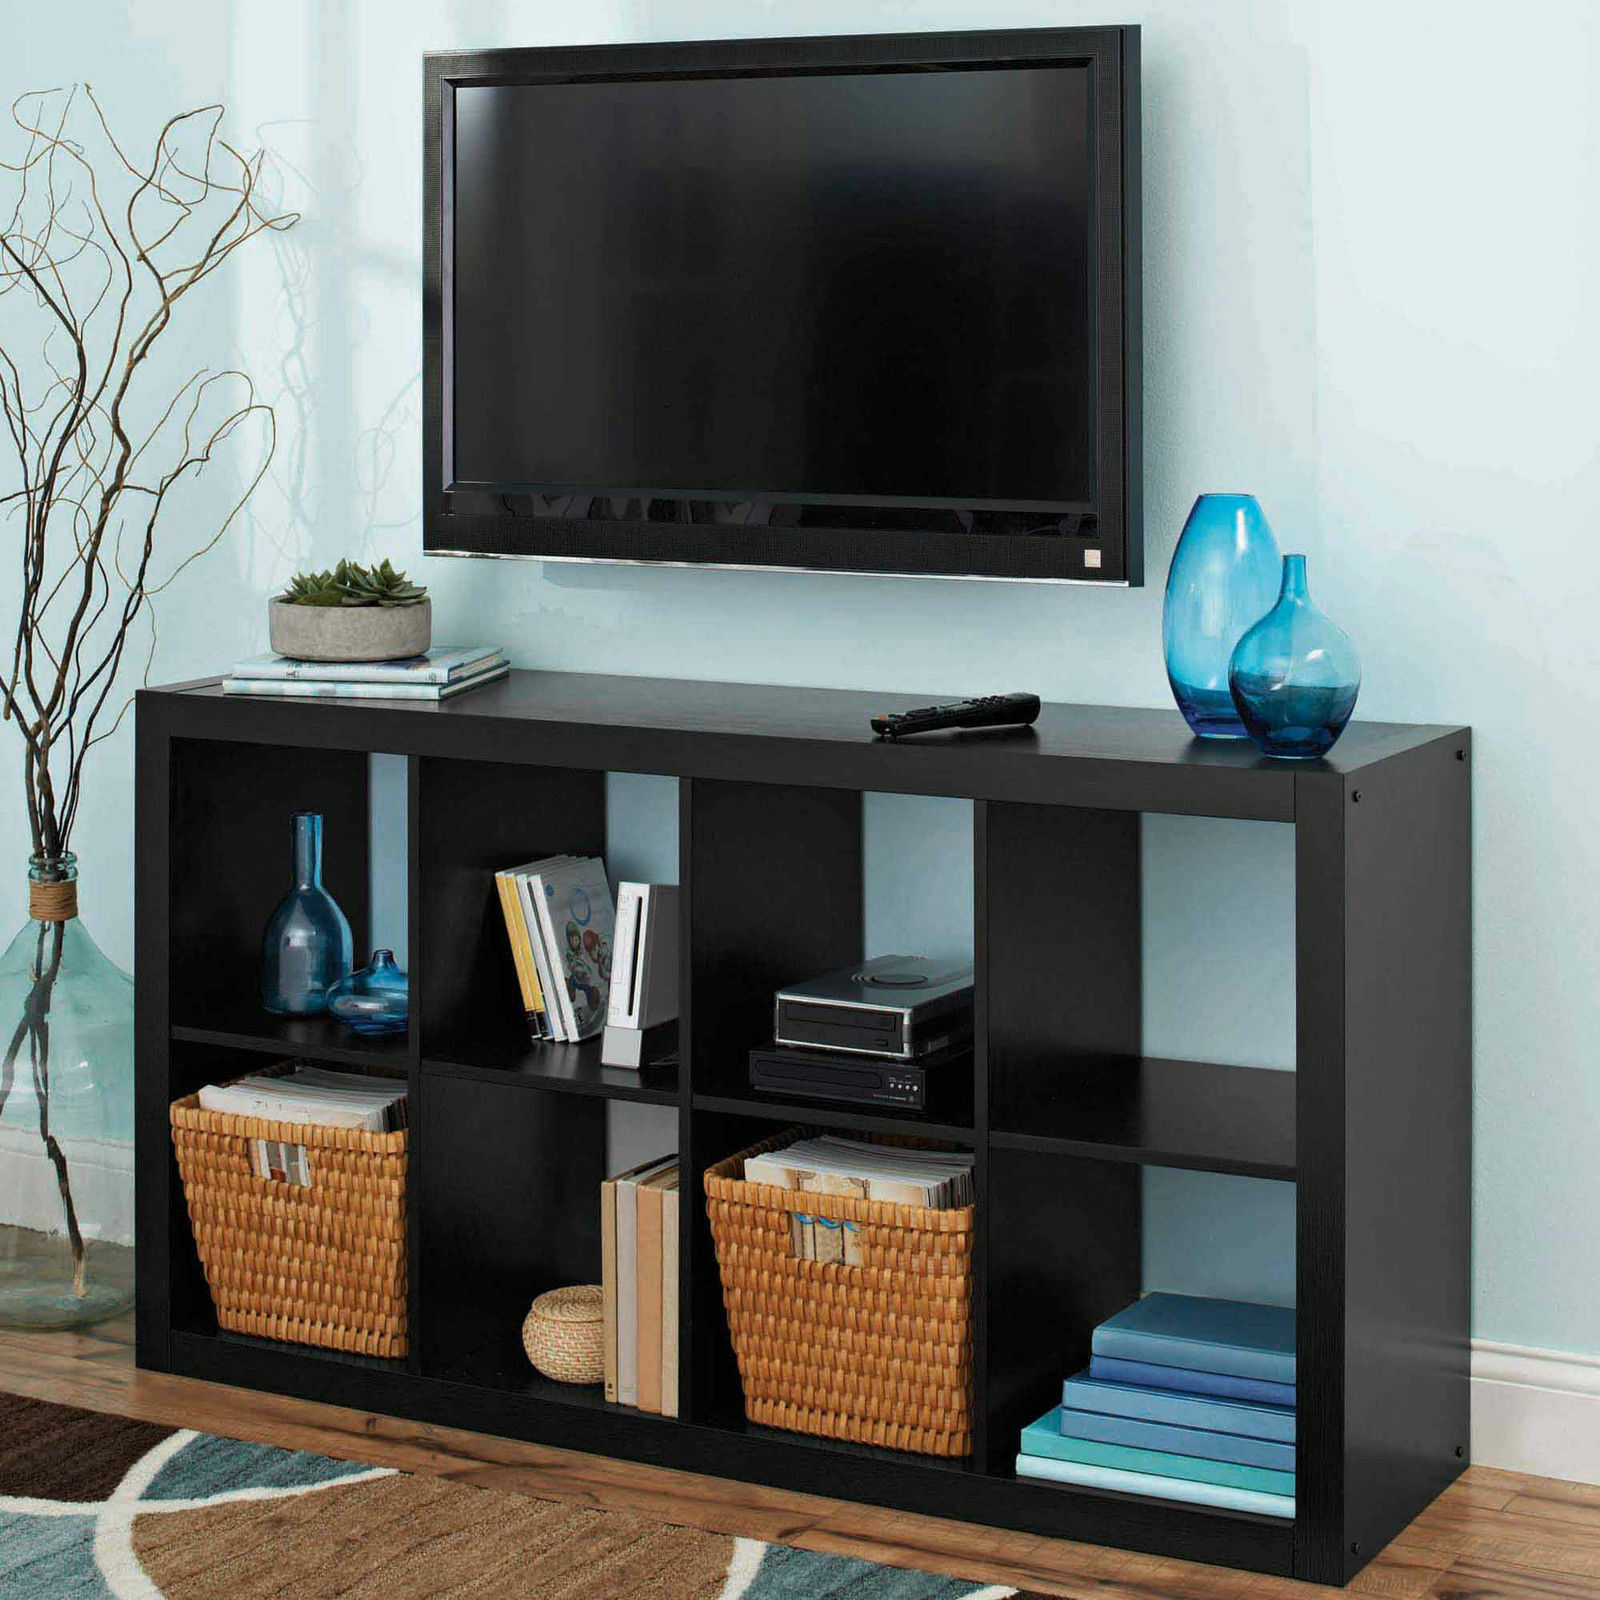 Better Homes And Gardens 8 Cube Organizer Storage Bookcase Multiple Colors Ebay